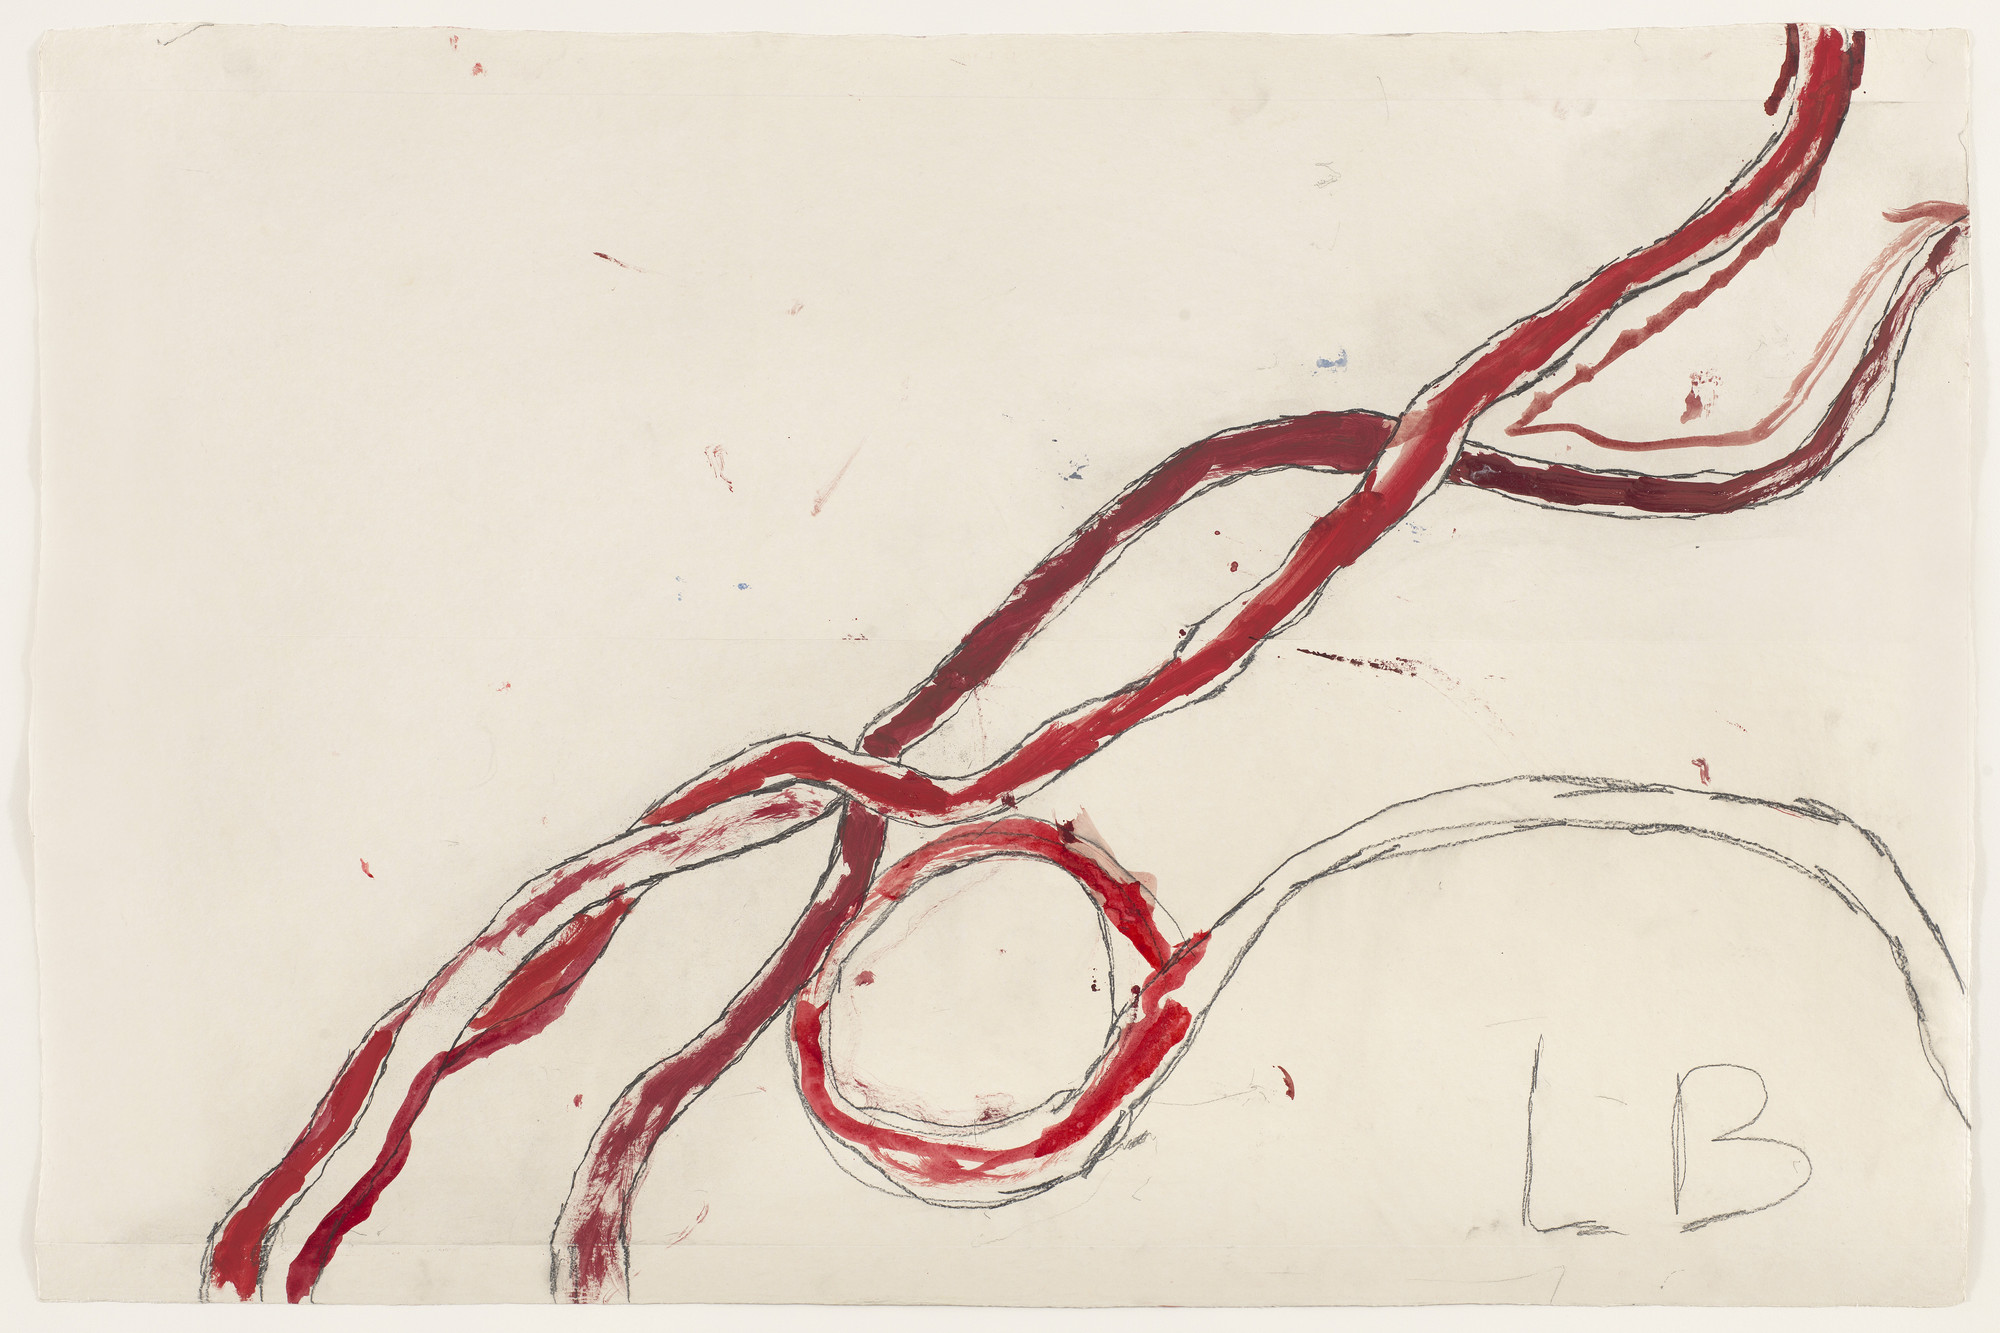 Louise Bourgeois. Untitled, no. 6 of 14, from À l'Infini (set 1). 2008